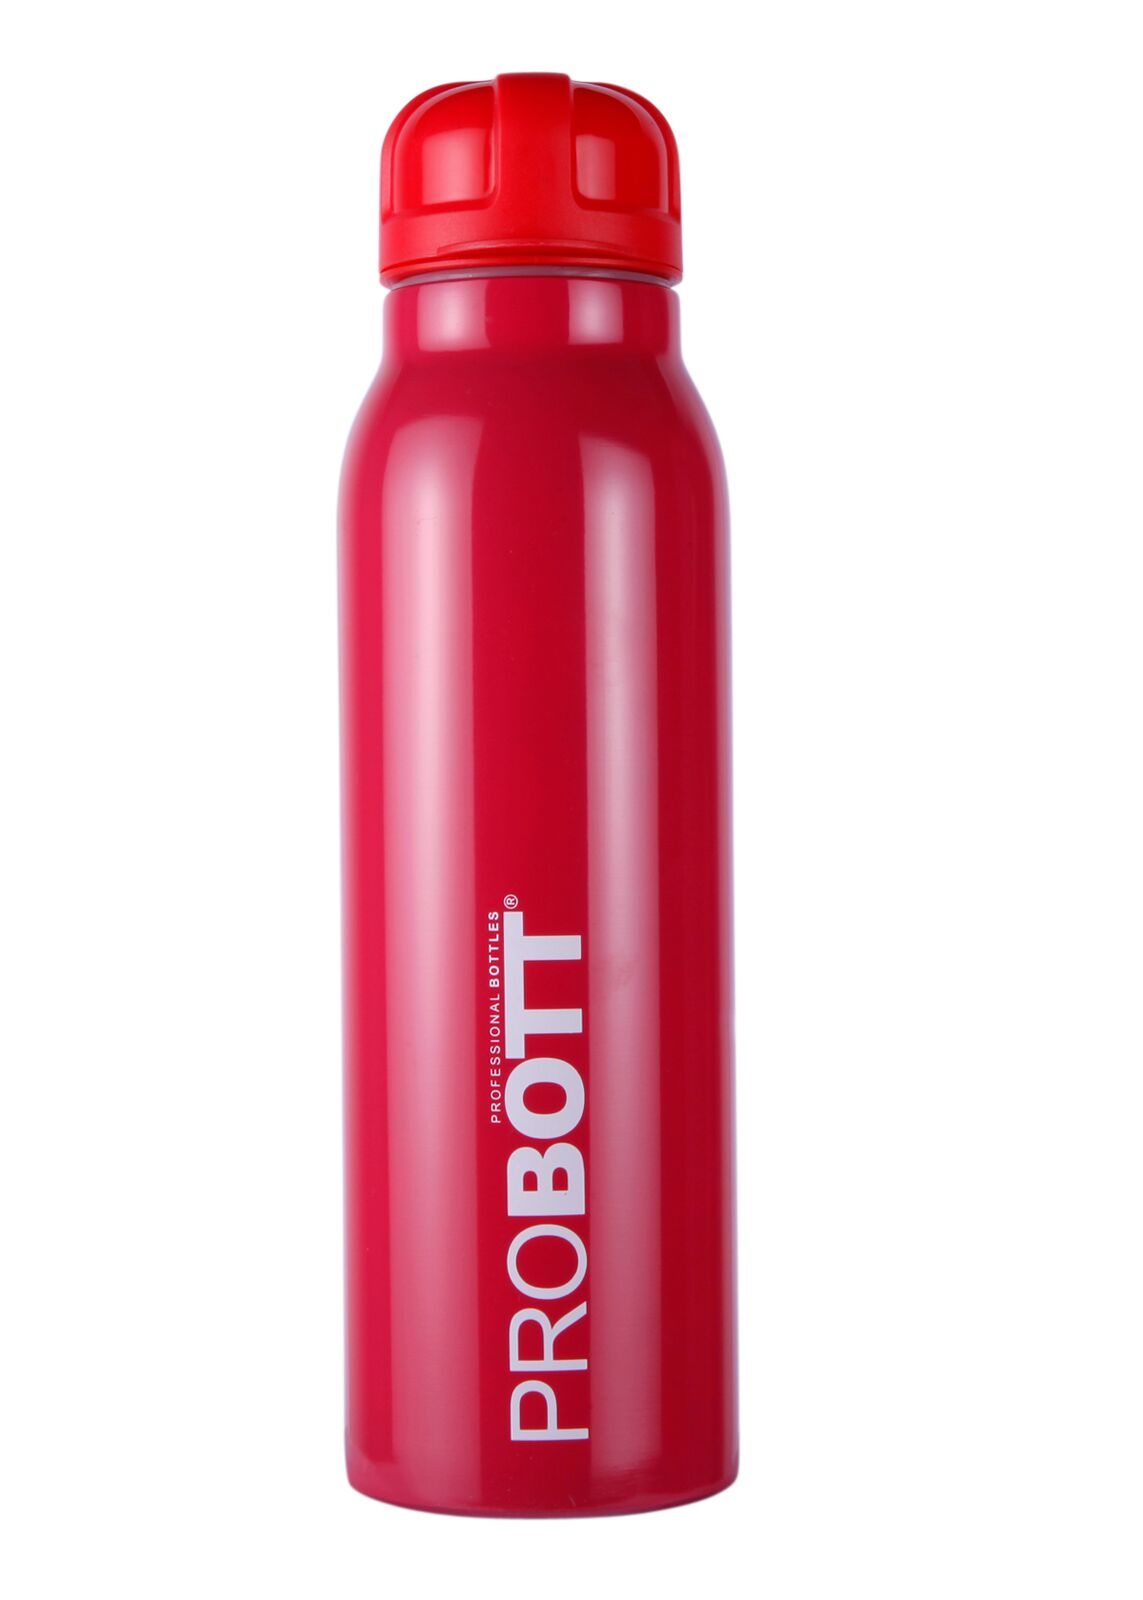 Probott Vacuum Flask Multicolour 600 Ml Stainless steel Thermoware in Pink / Sky Blue / Yellow / Blue Colour by Probott